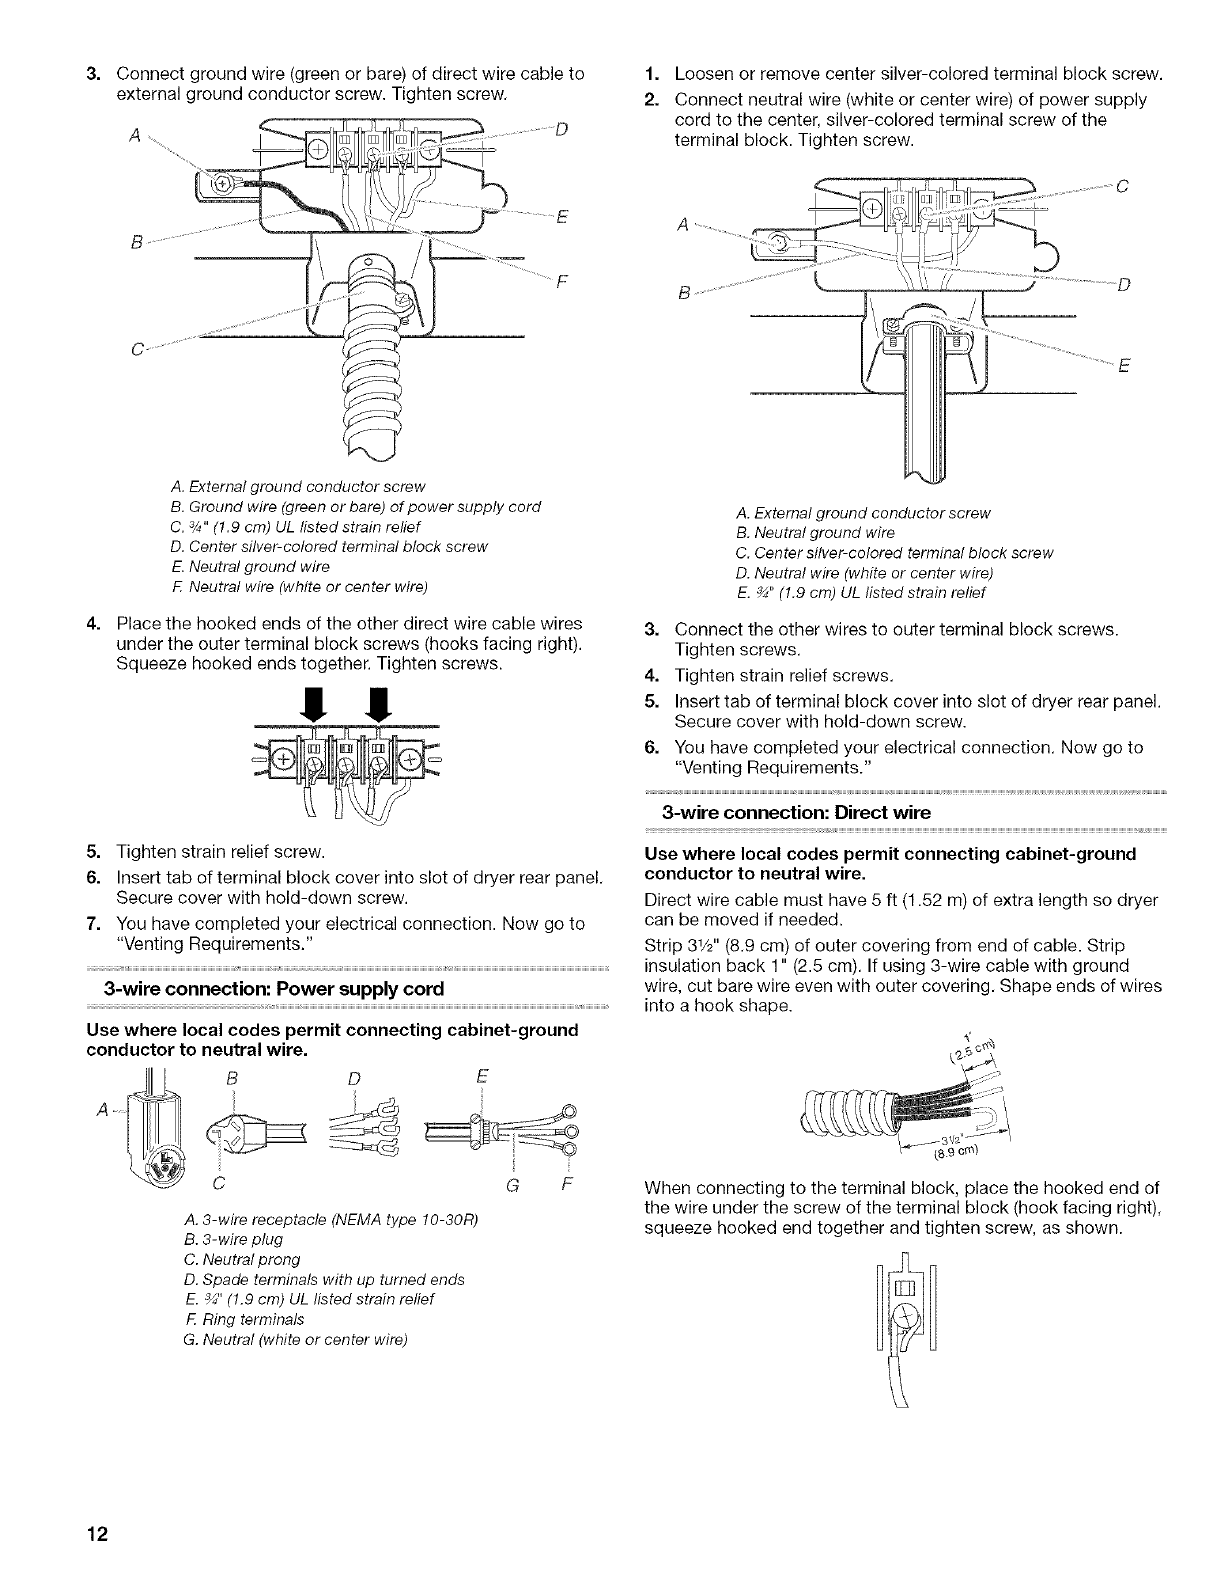 hight resolution of page 12 of kenmore clothes dryer 110 8586 user guide electric dryers direct 3wire connection